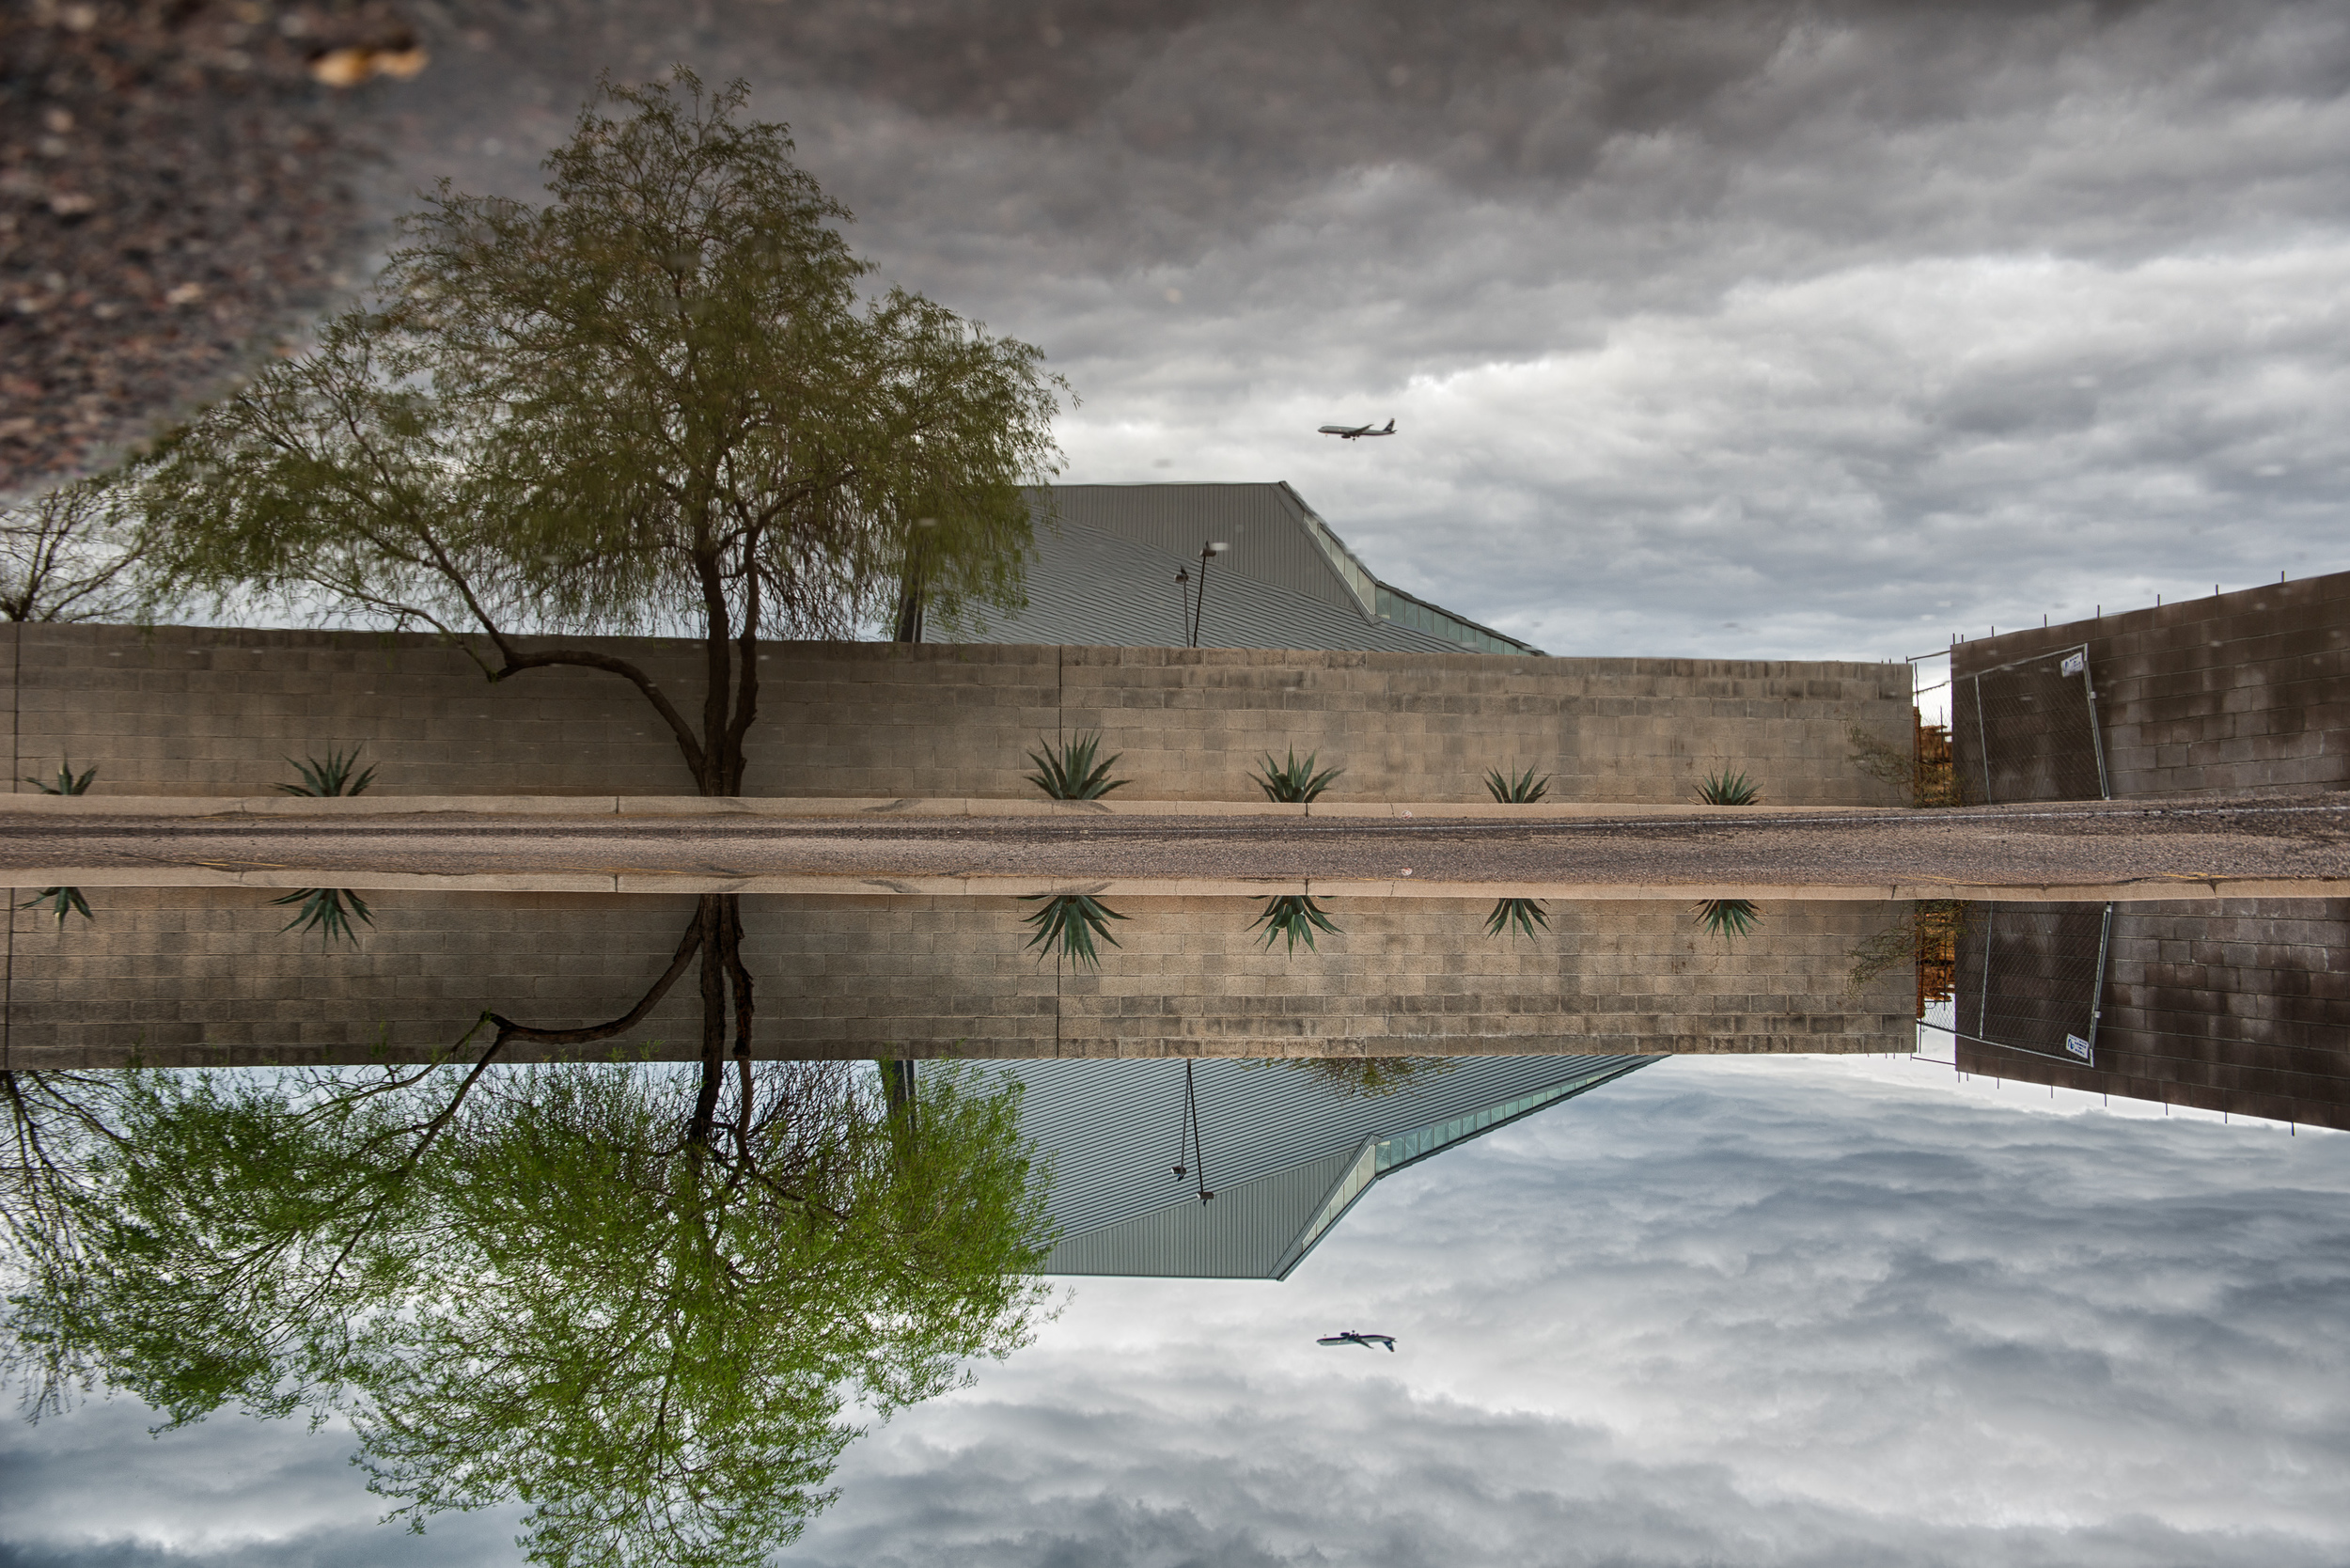 TP_Reflection-30250-Edit.jpg